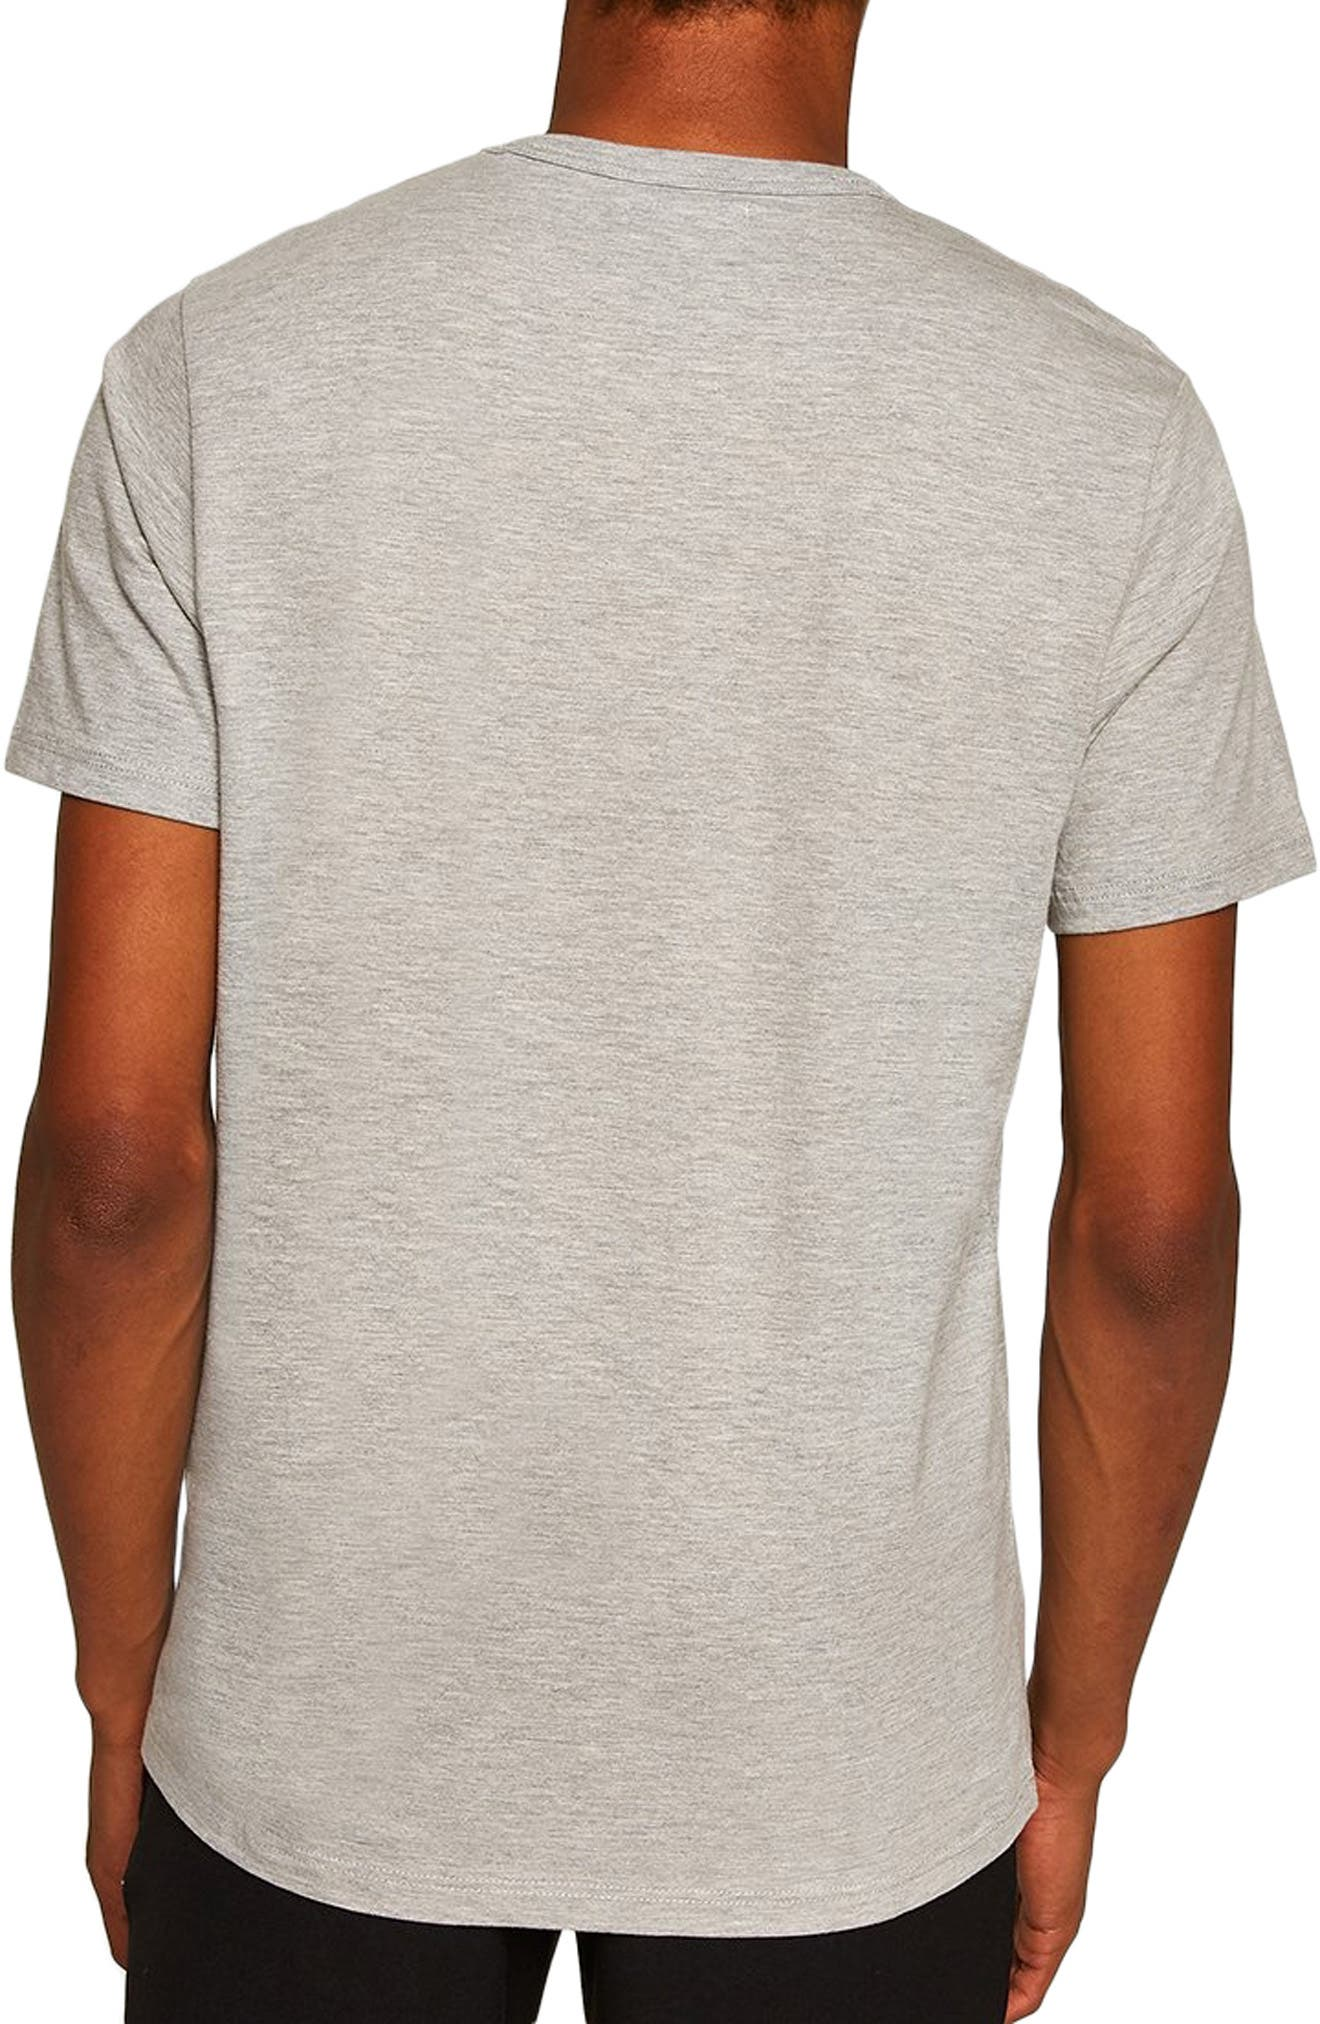 Classic Fit T-Shirt,                             Alternate thumbnail 2, color,                             LIGHT GREY